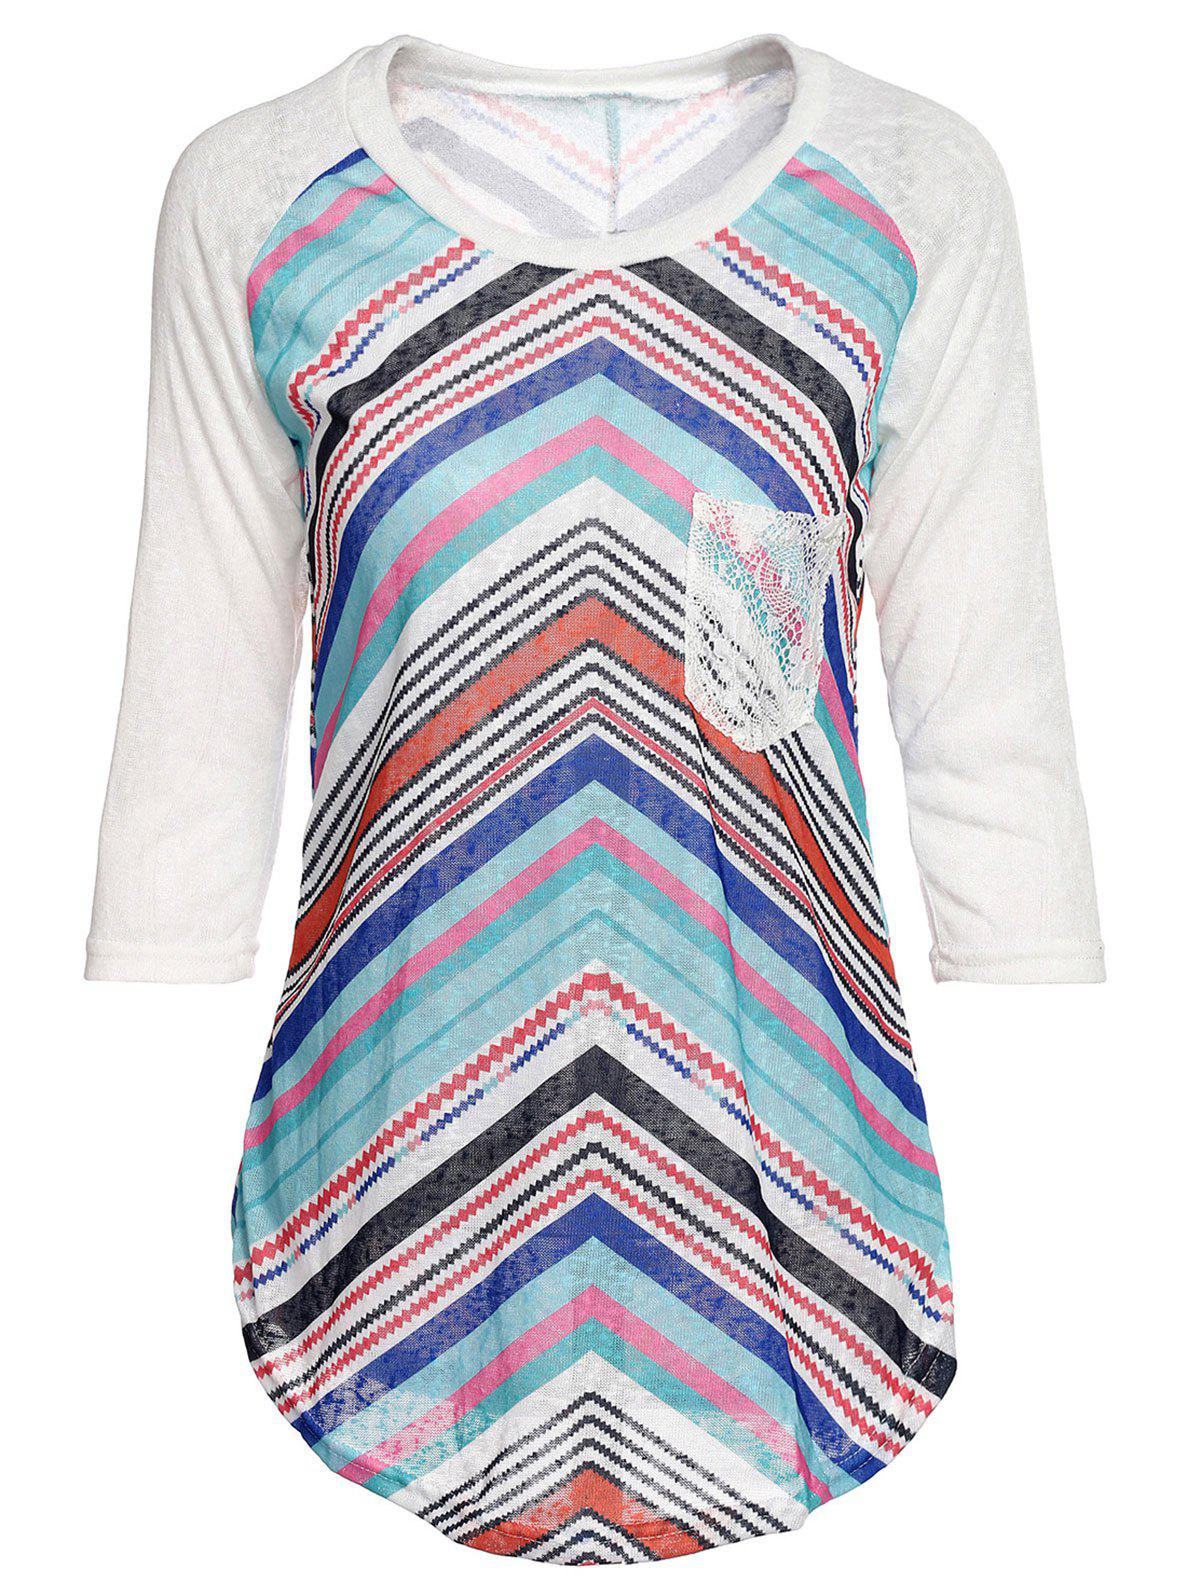 Concise Lace Spliced Sleeve Zigzag Print T-Shirt For Women - COLORMIX L